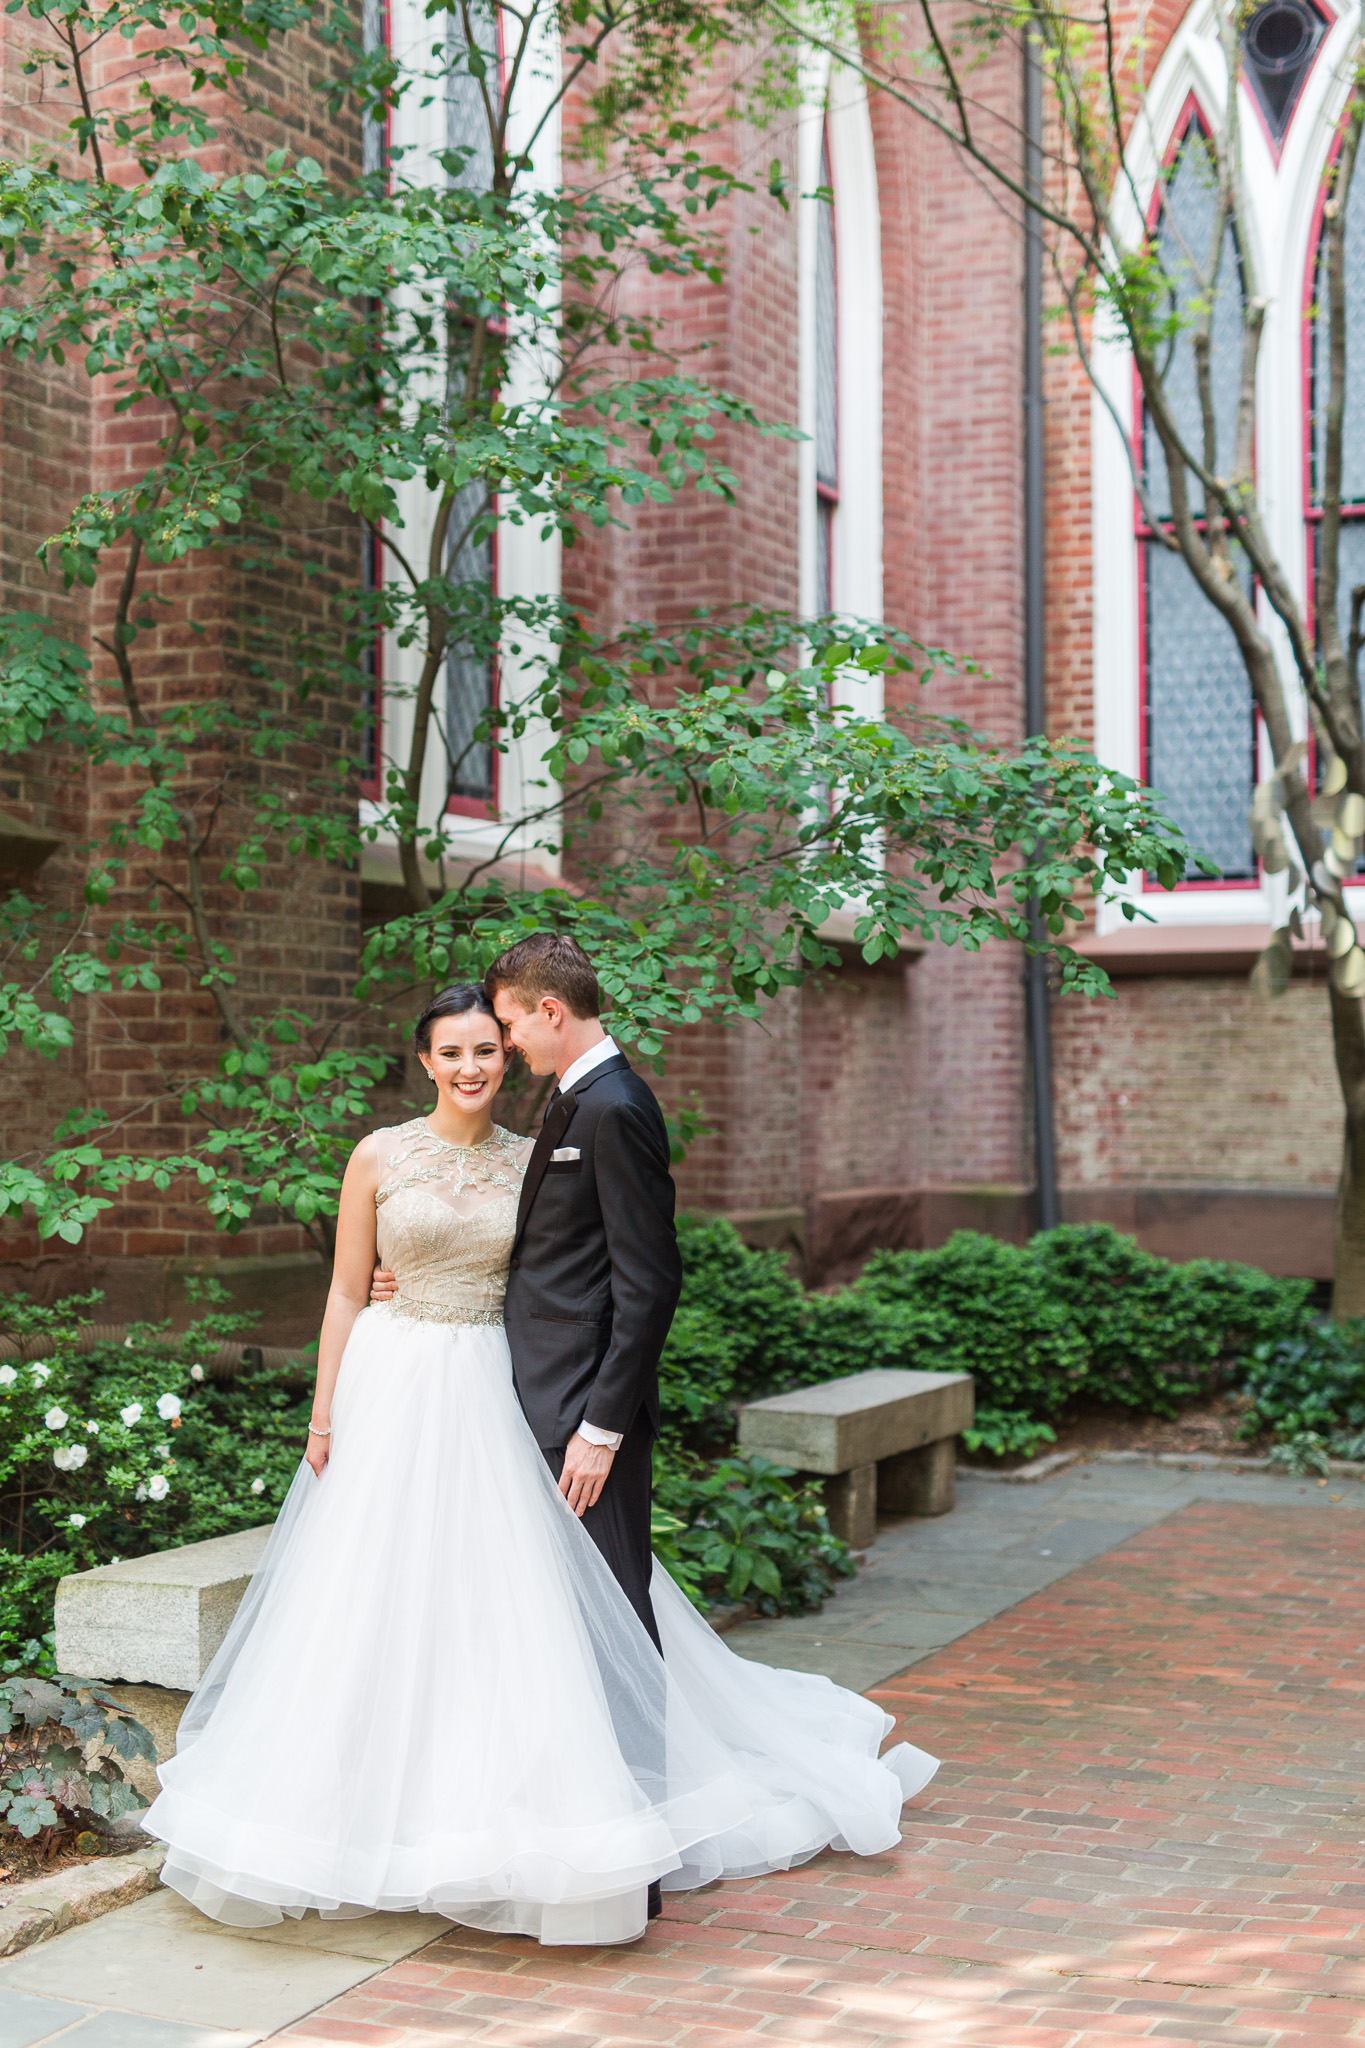 John Marshall Ballrooms Wedding in Richmond, VA || Lynchburg, Charlottesville, and Richmond Wedding Photographer || www.ashleyeiban.com